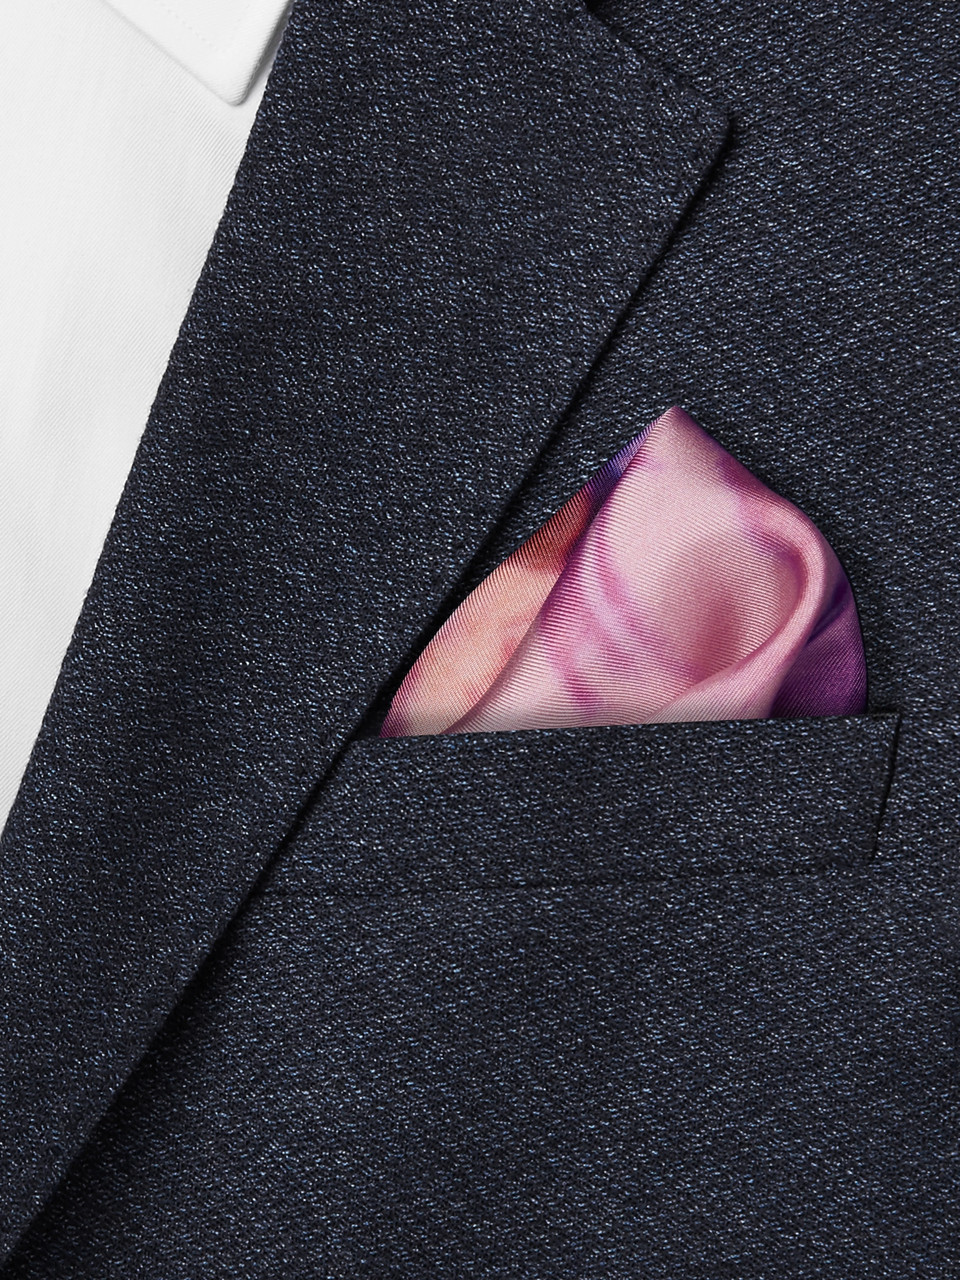 Paul Smith Printed Silk-Twill Pocket Square